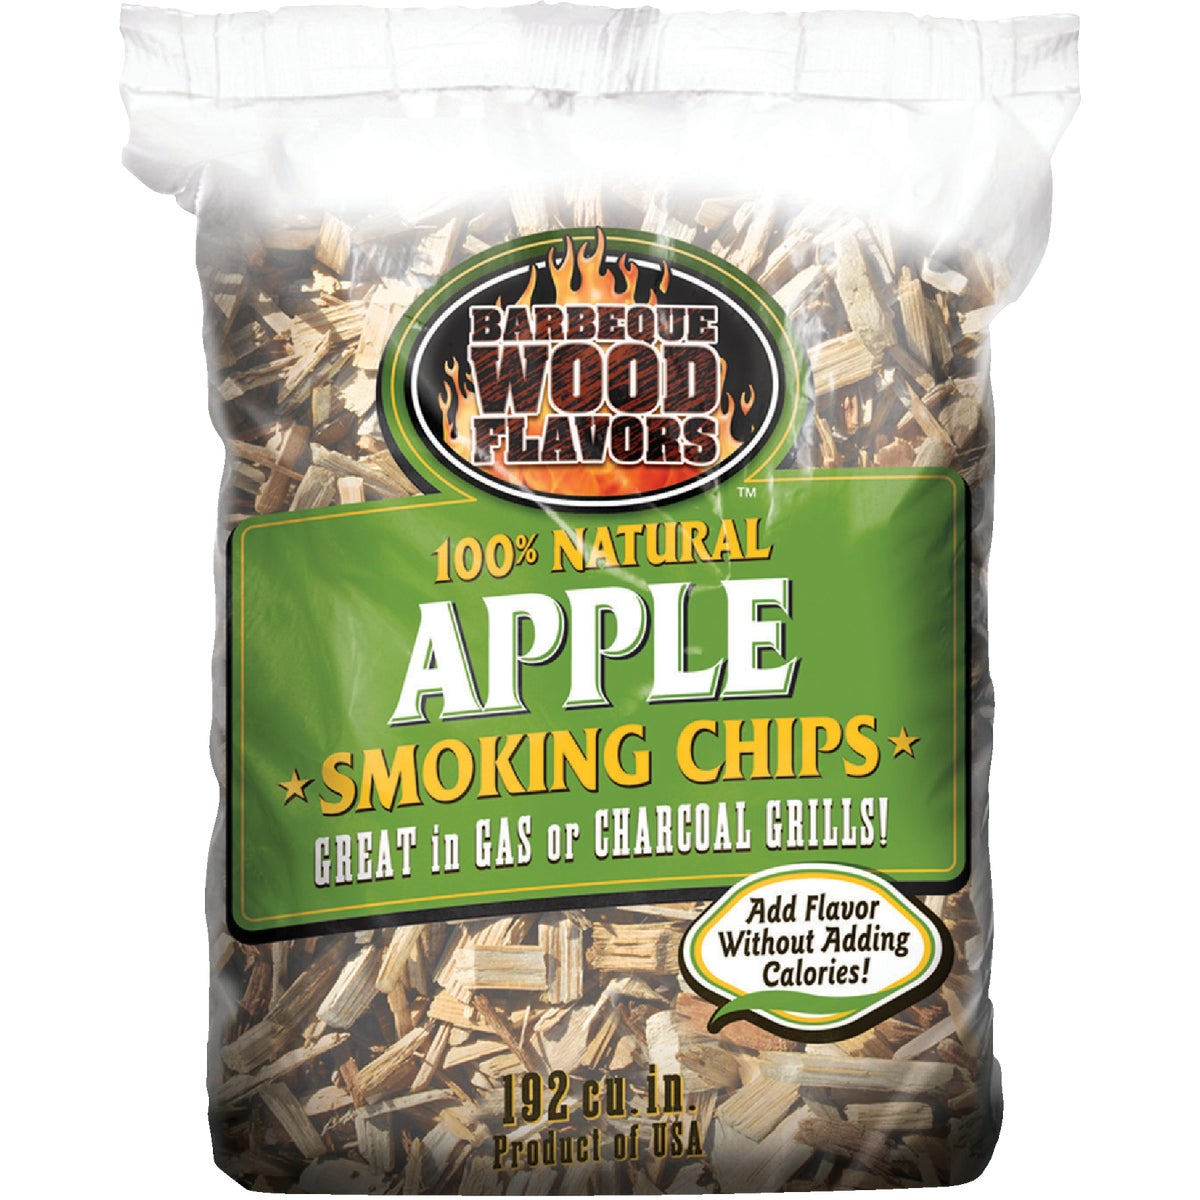 2.25LB APPLE WOOD CHIPS - 90302 by Barbeque Wood Flavor